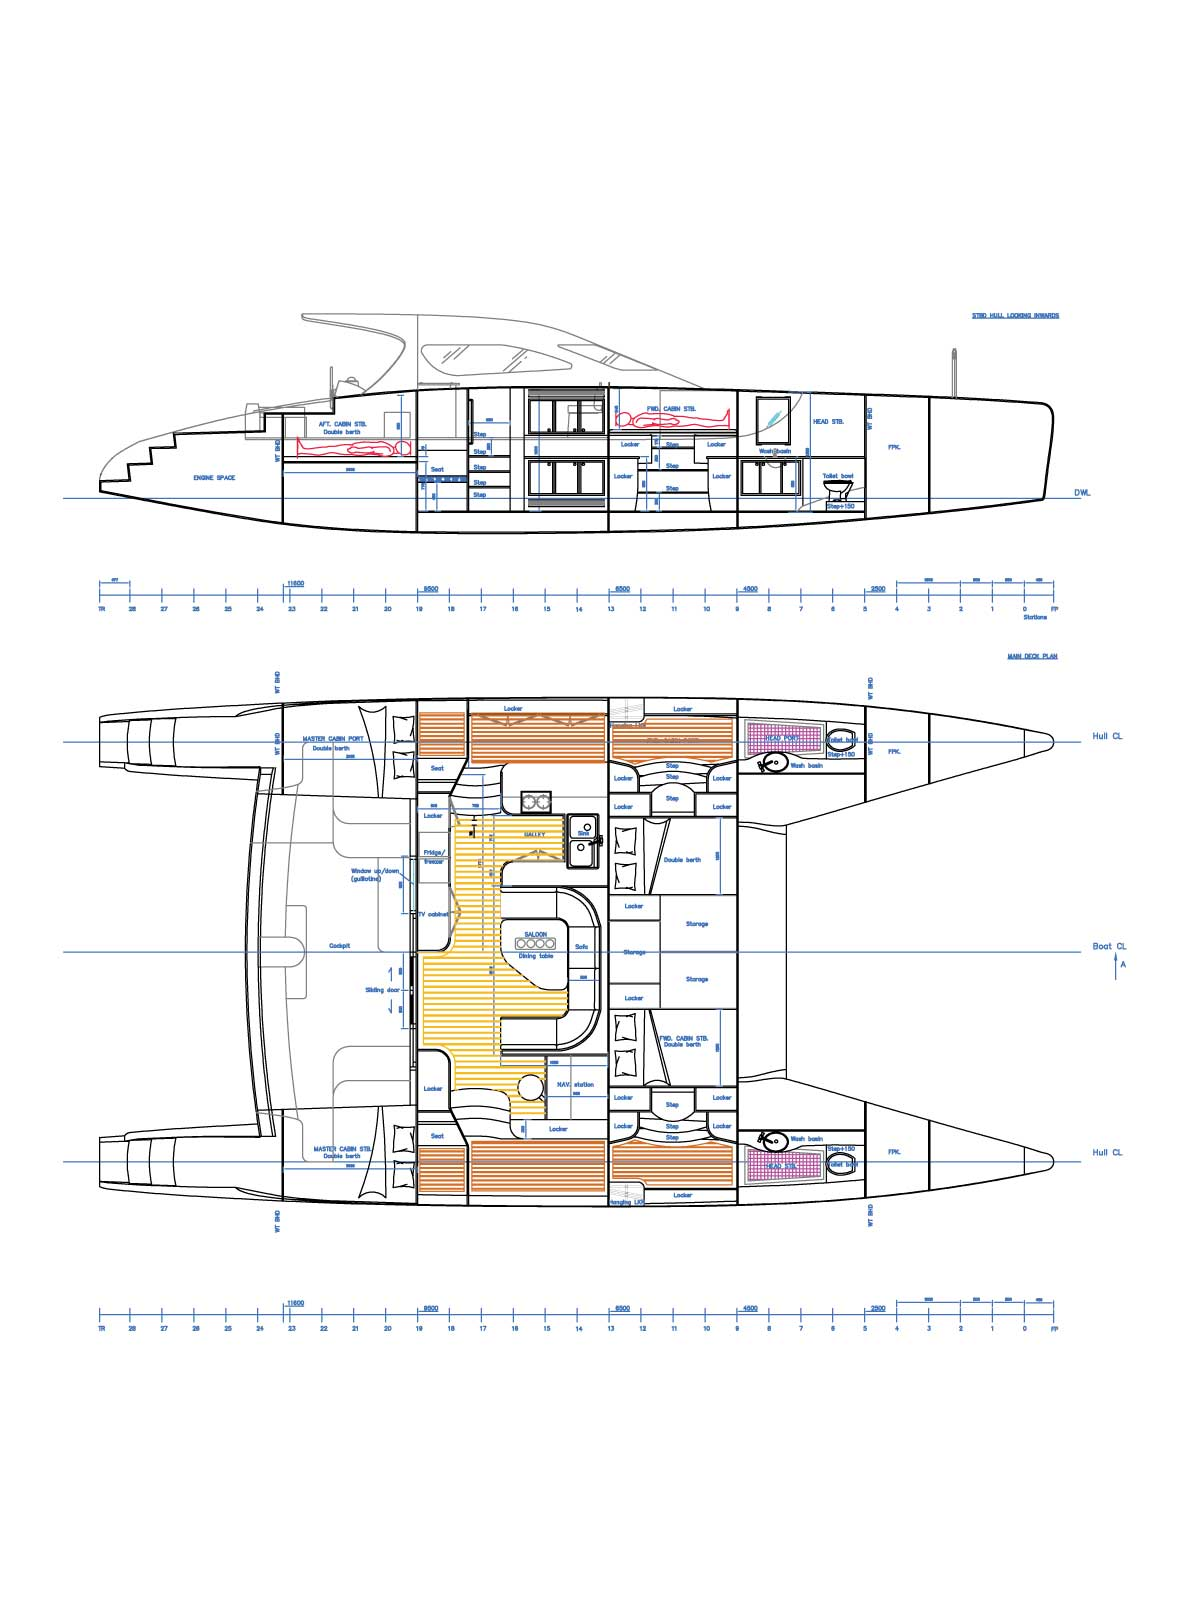 Small catamaran power boat plans ~ Favorite Plans